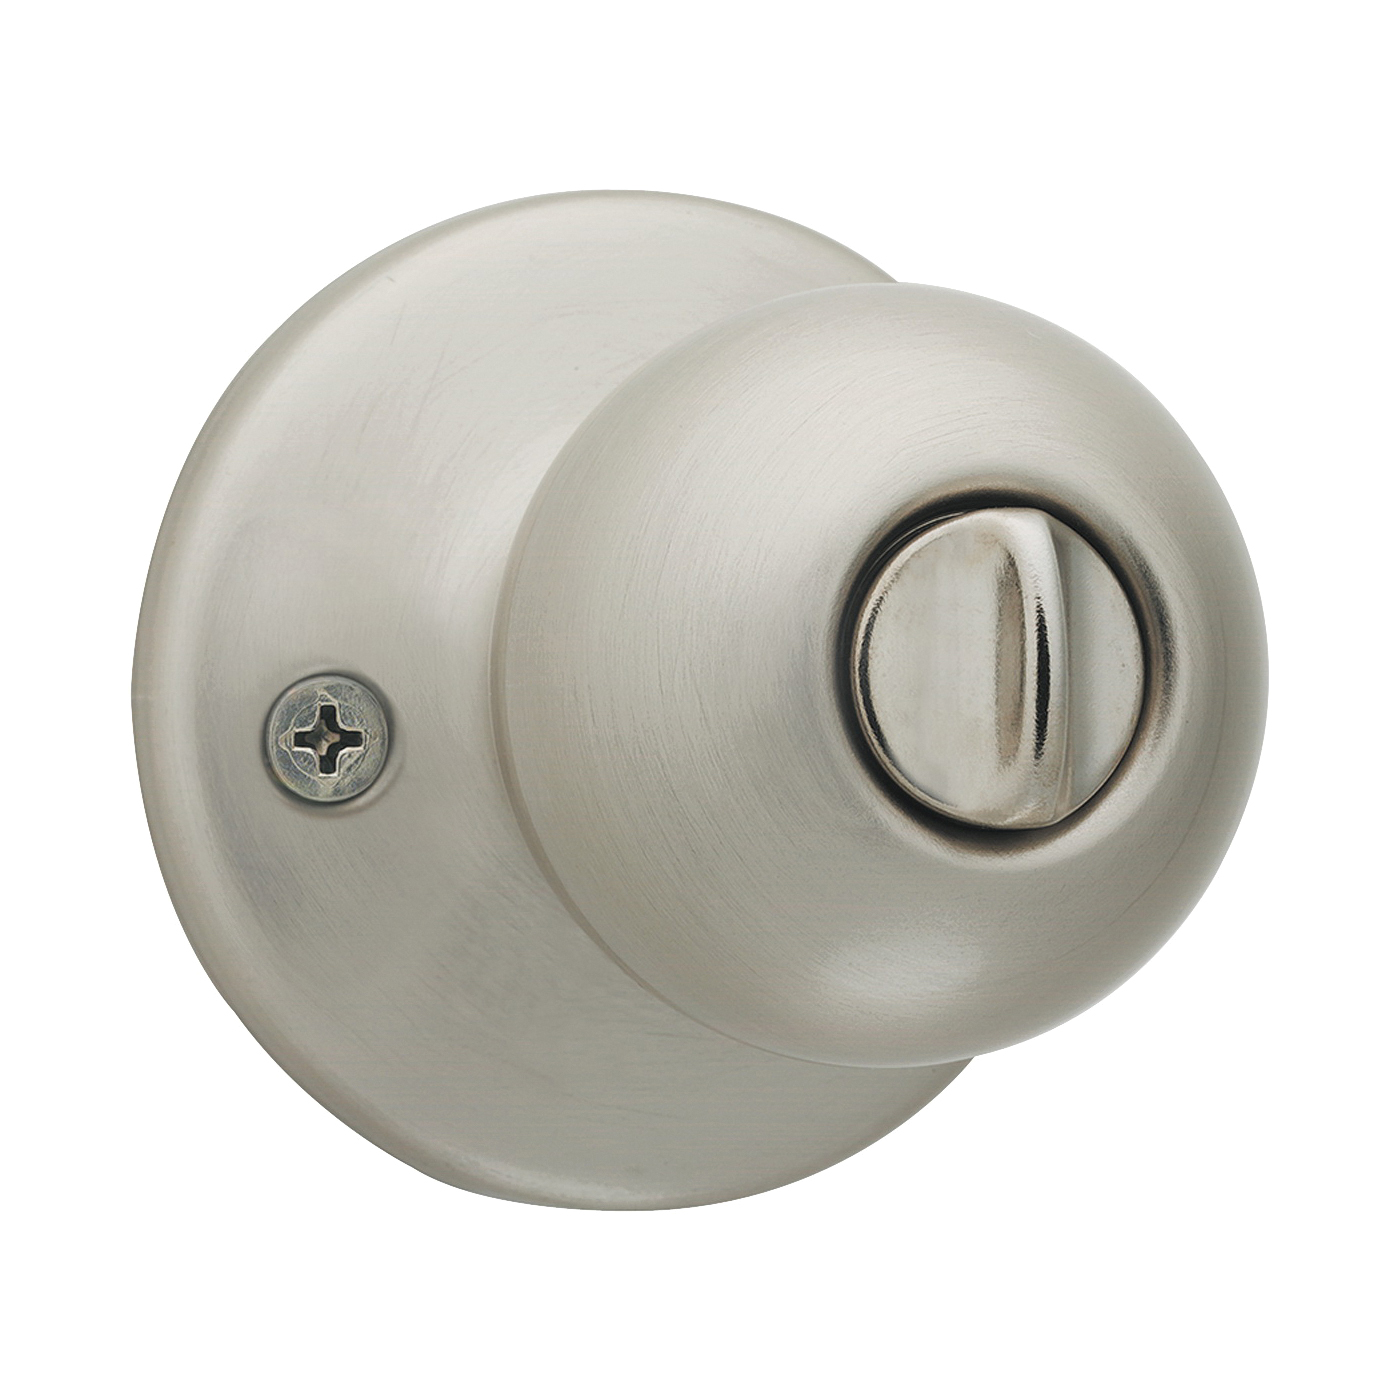 Picture of Kwikset 93001-875 Security Polo Knob Lockset, Satin Nickel